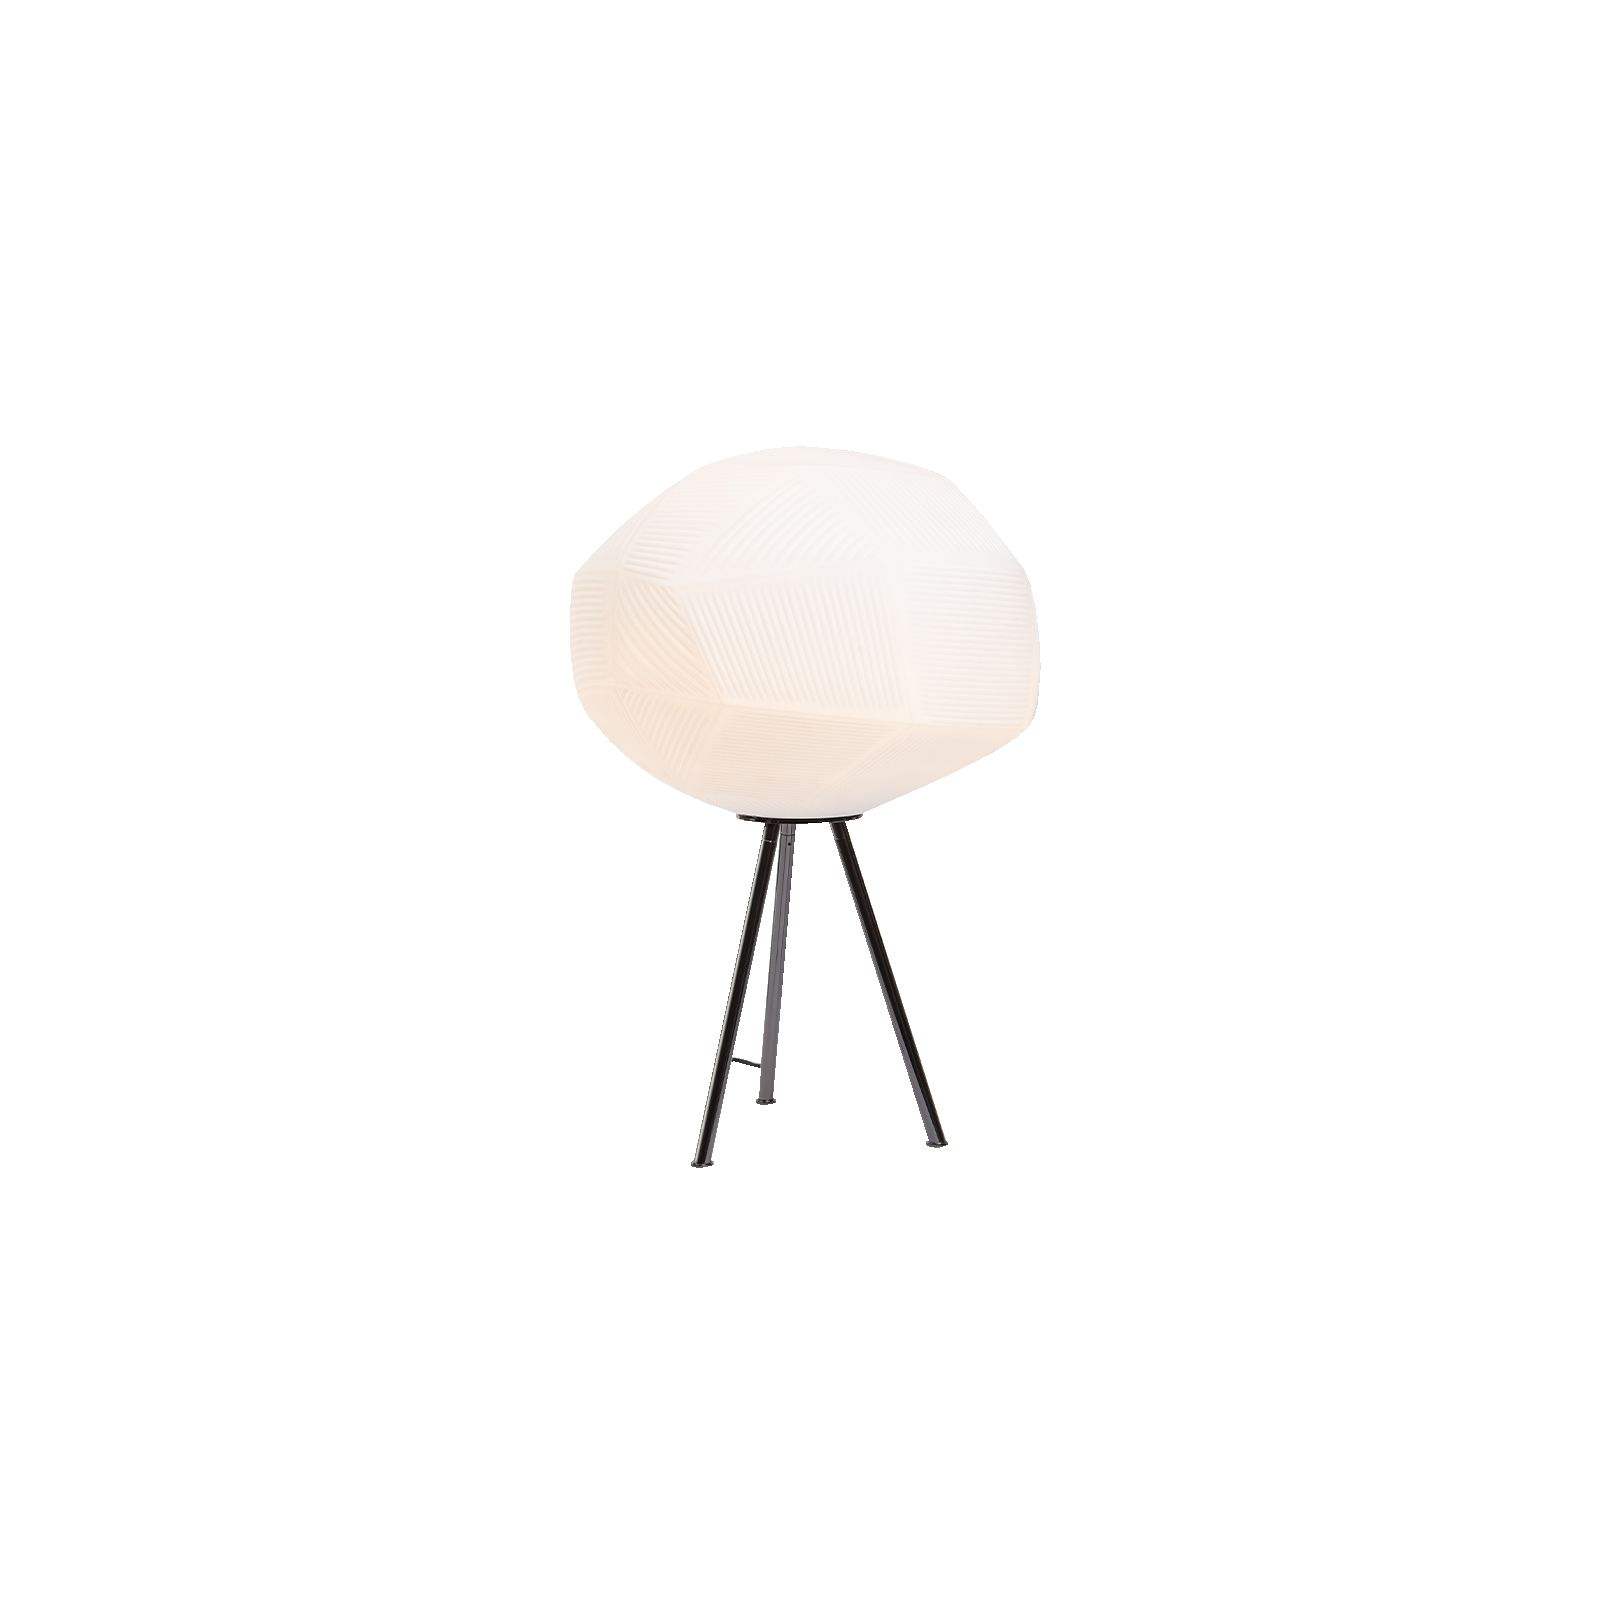 GEMO TABLE LAMP